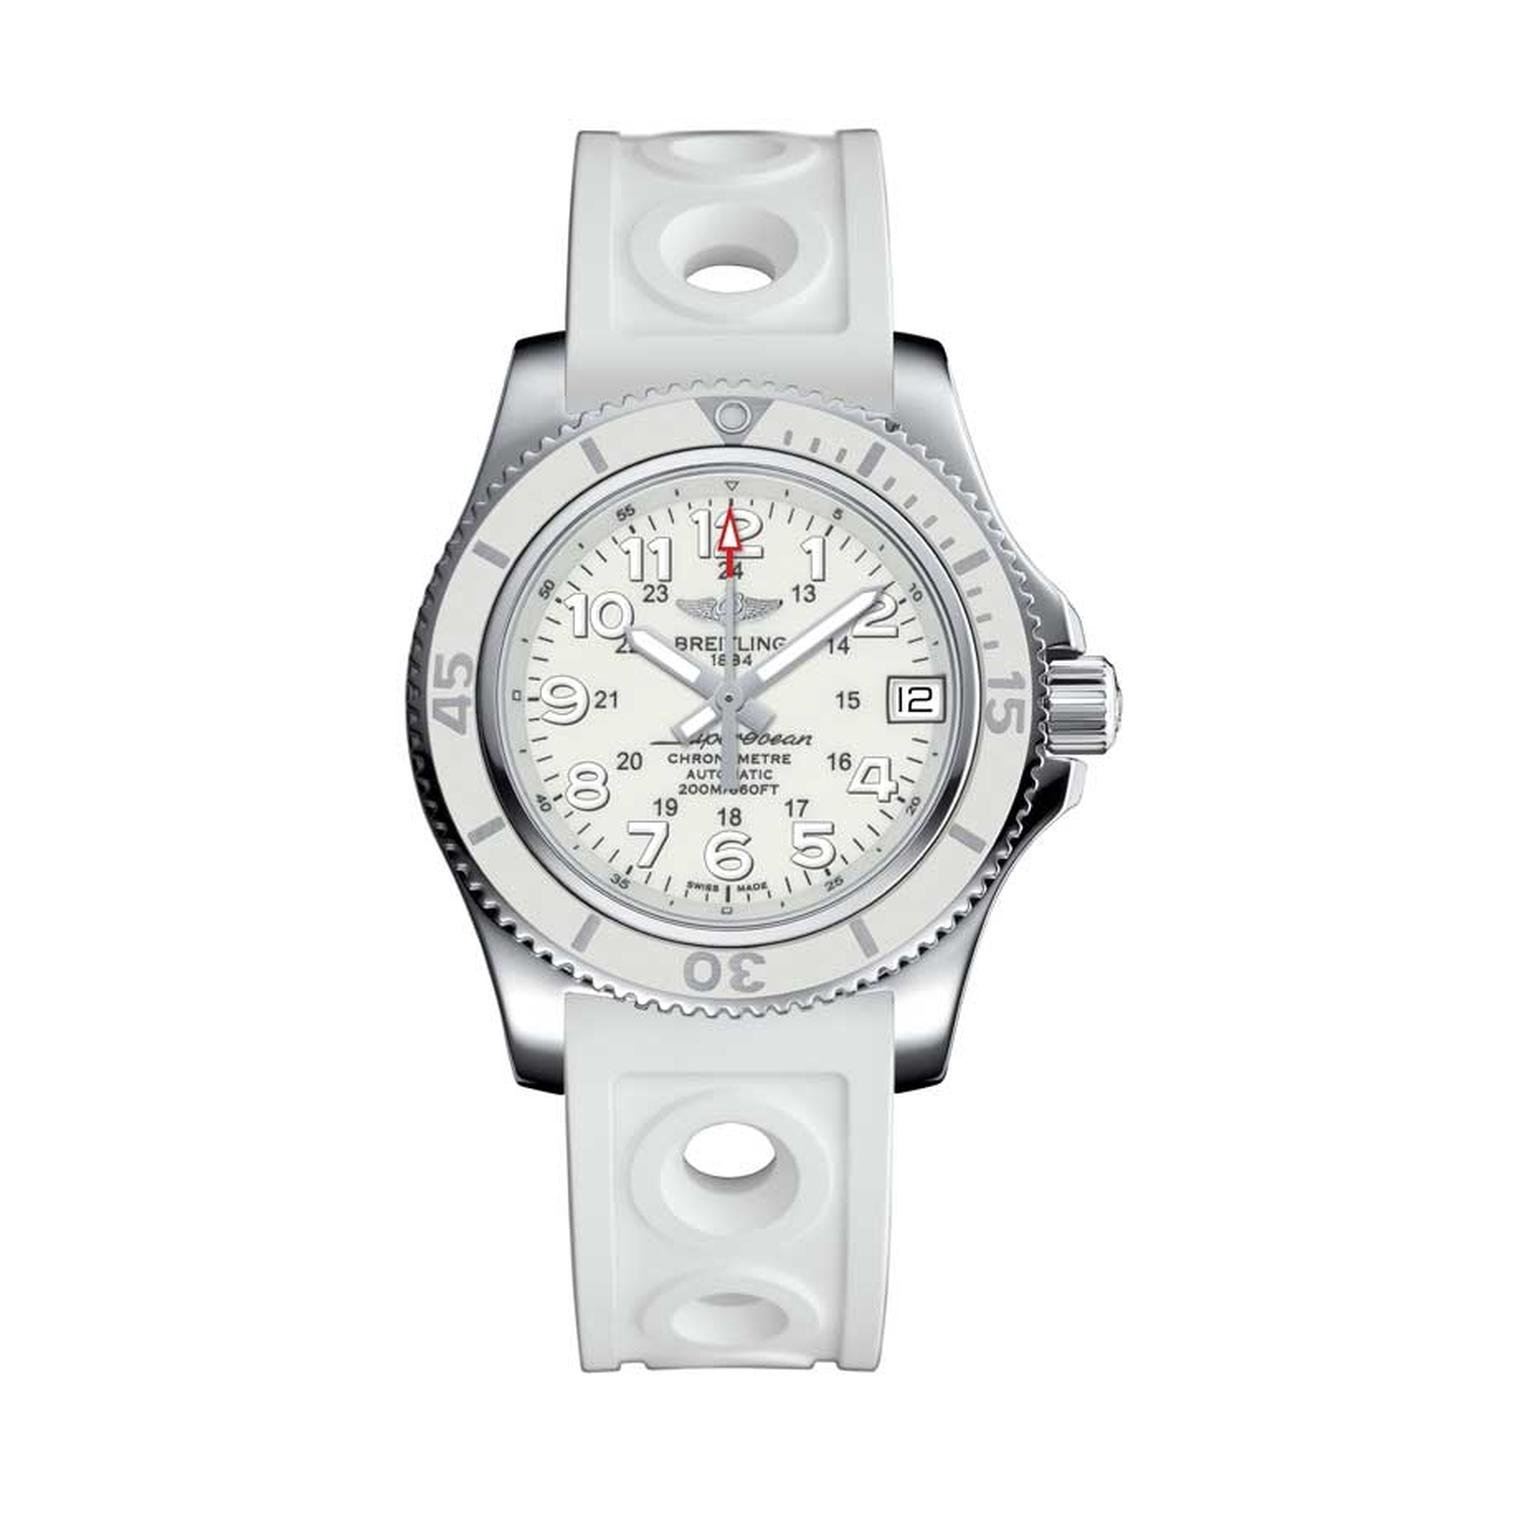 Breitling Superocean II 36mm watch for women in an all-white look is a superdiver with a unidirectional rotating bezel for dive times, luminous hands and numbers, and a sturdy case to withstand depths of 200 metres. Inside the case is a COSC-certified aut